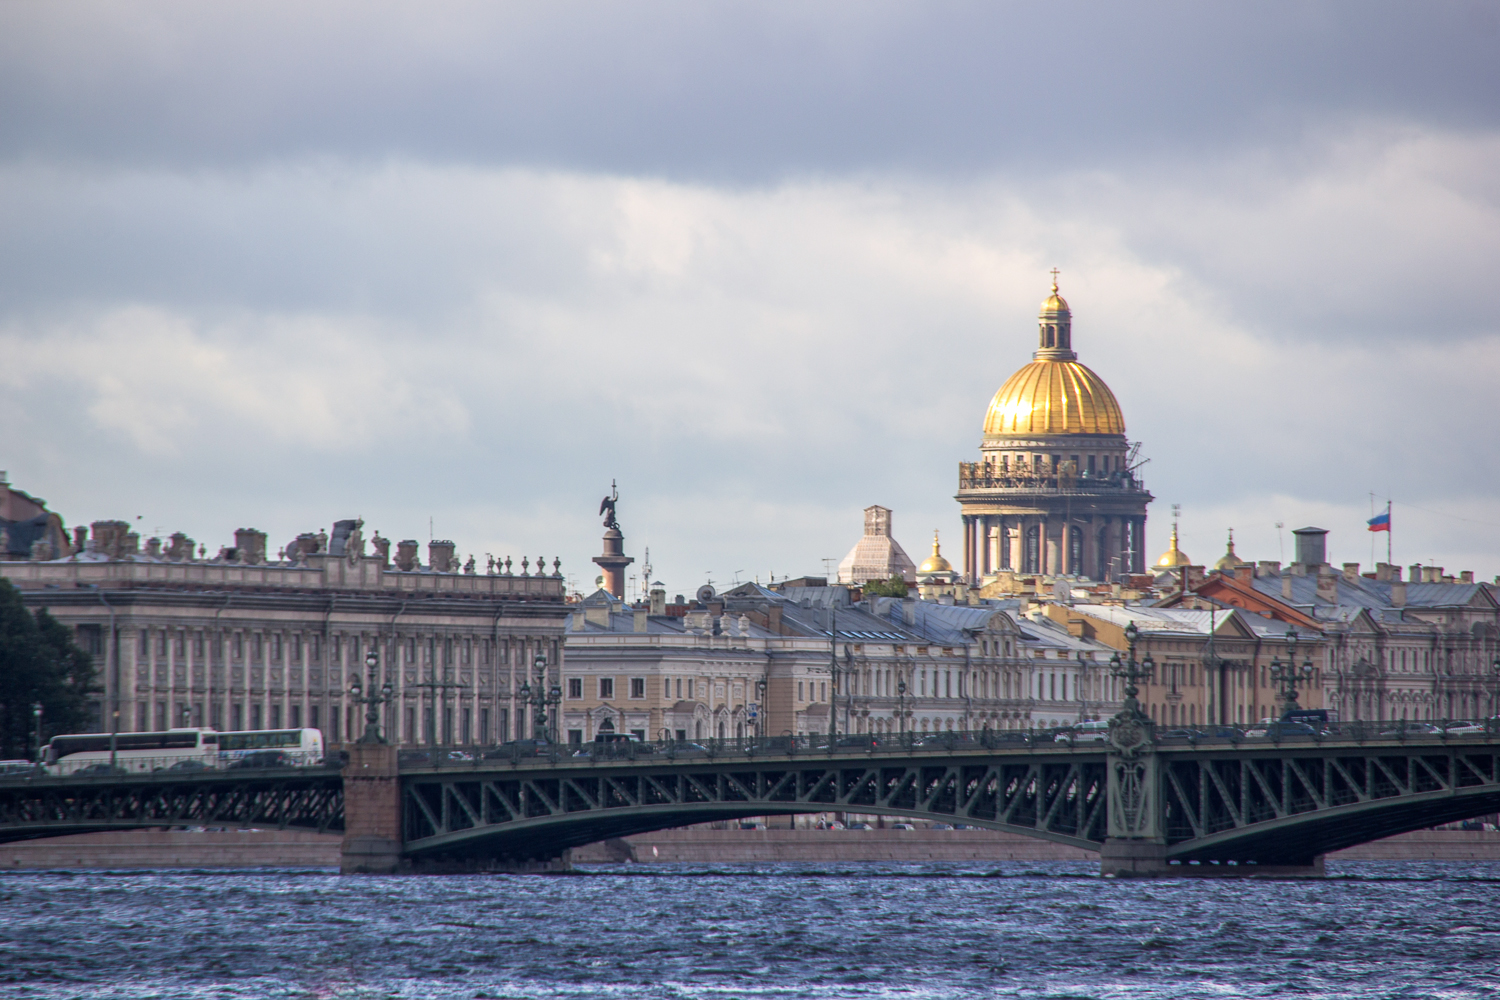 River and Cathedral, Architecture, Landmark, Shine, Saint-petersburg, HQ Photo